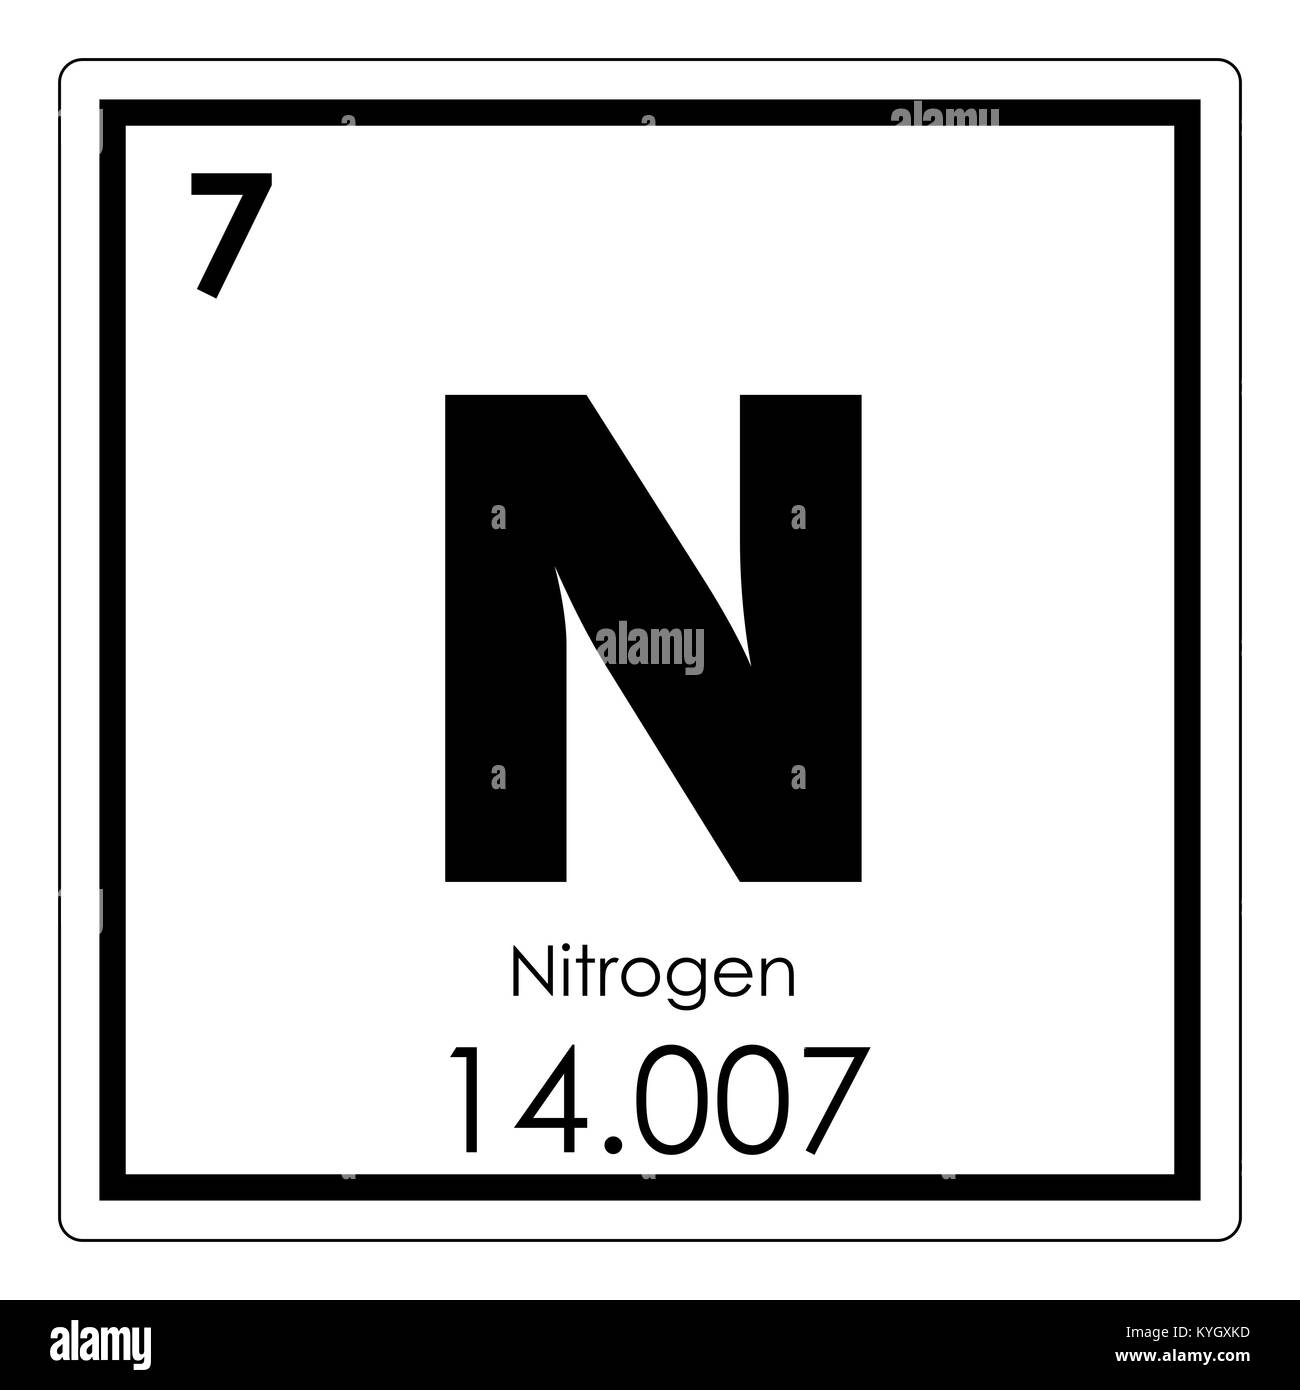 Periodic table autism meme choice image periodic table and periodic table nitrogen images periodic table and sample with nitrogen chemical element periodic table science symbol urtaz Choice Image